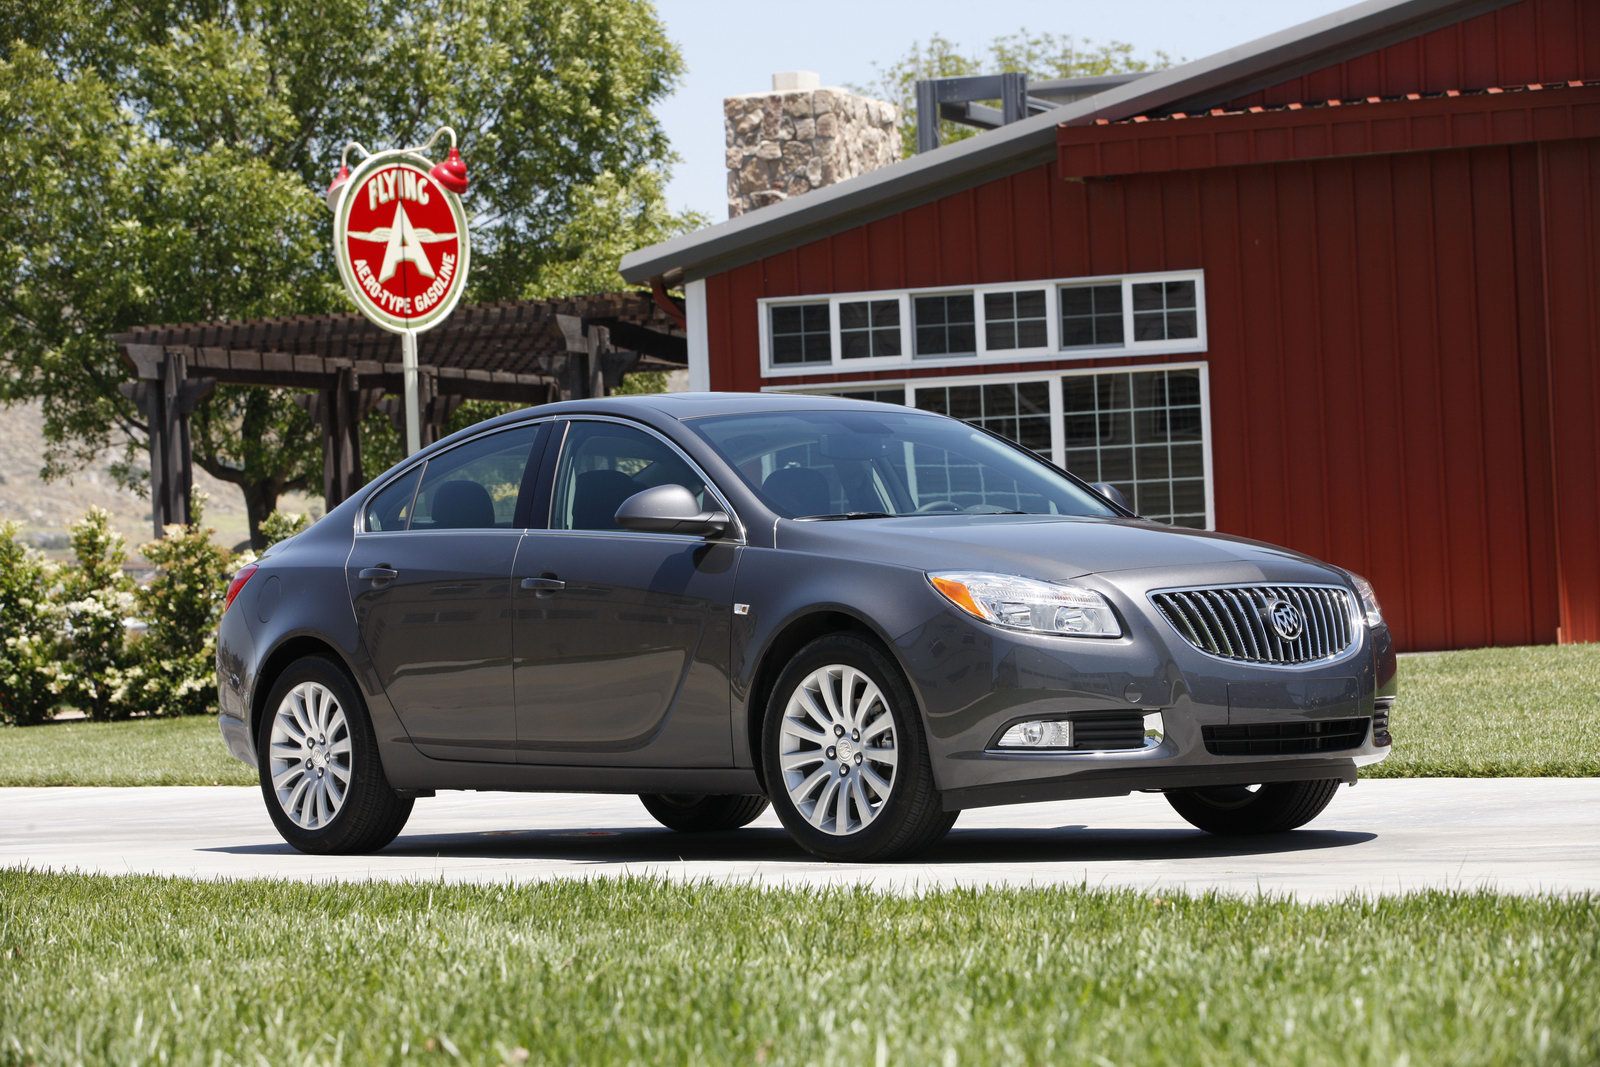 video buick launches first tv ad for 2011 regal touts german engineering. Black Bedroom Furniture Sets. Home Design Ideas